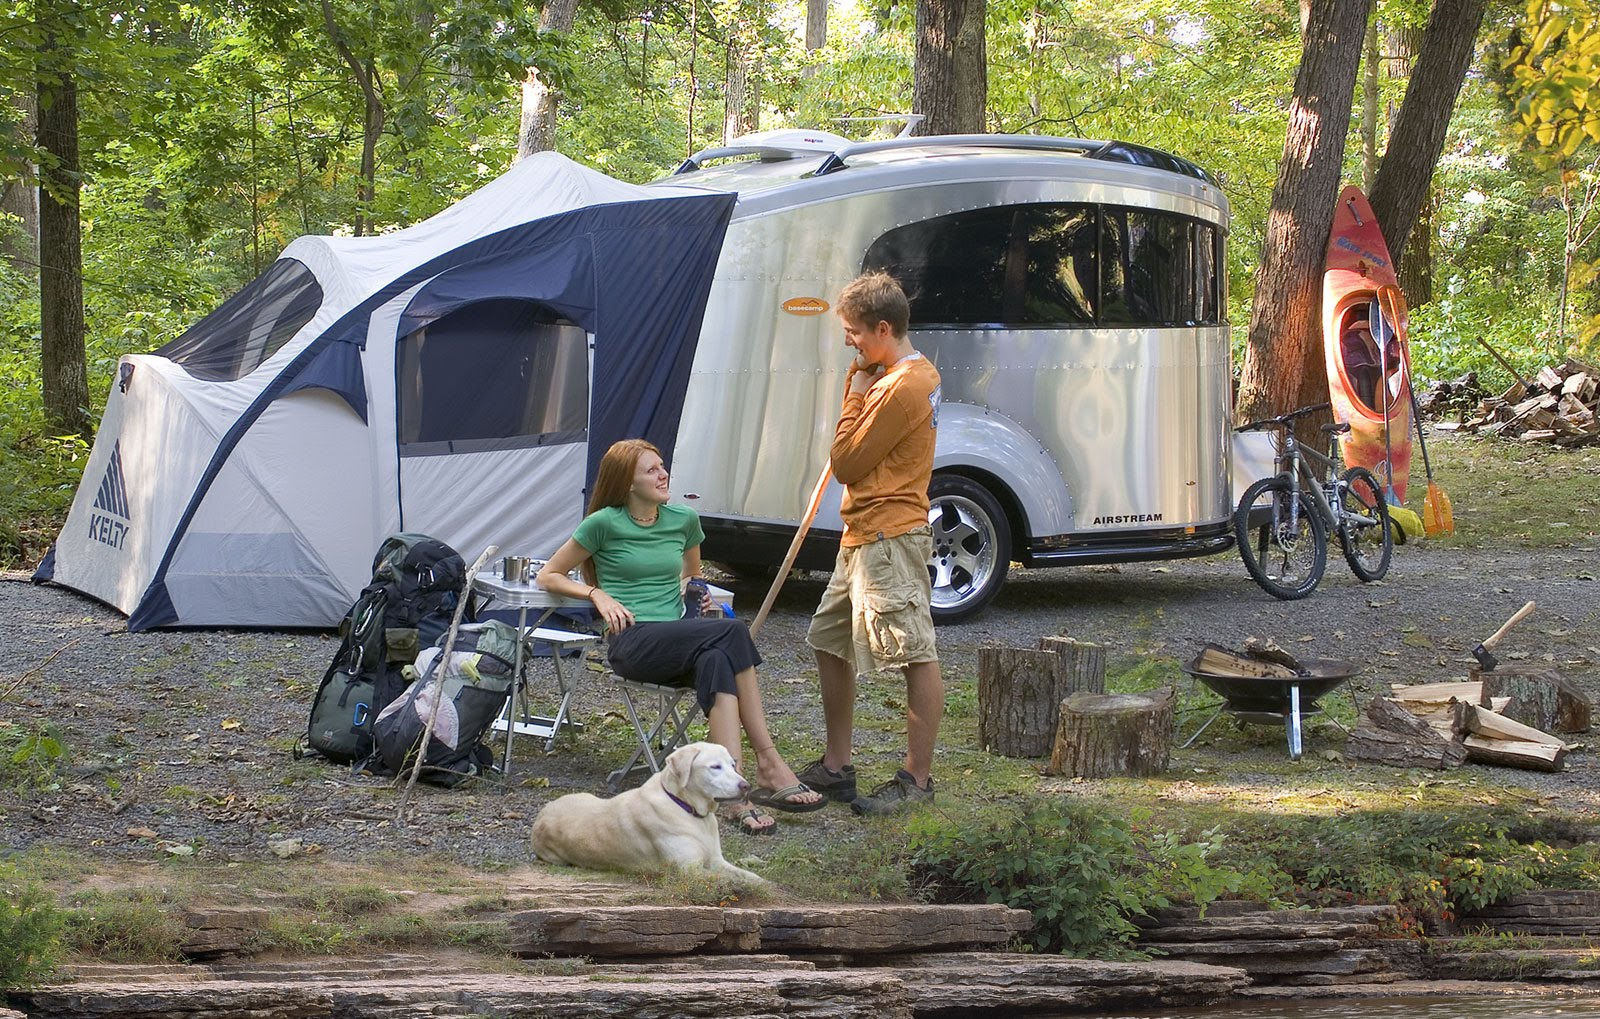 Airstream Trailers For Sale in Franklin, WI | Ewald Airstream